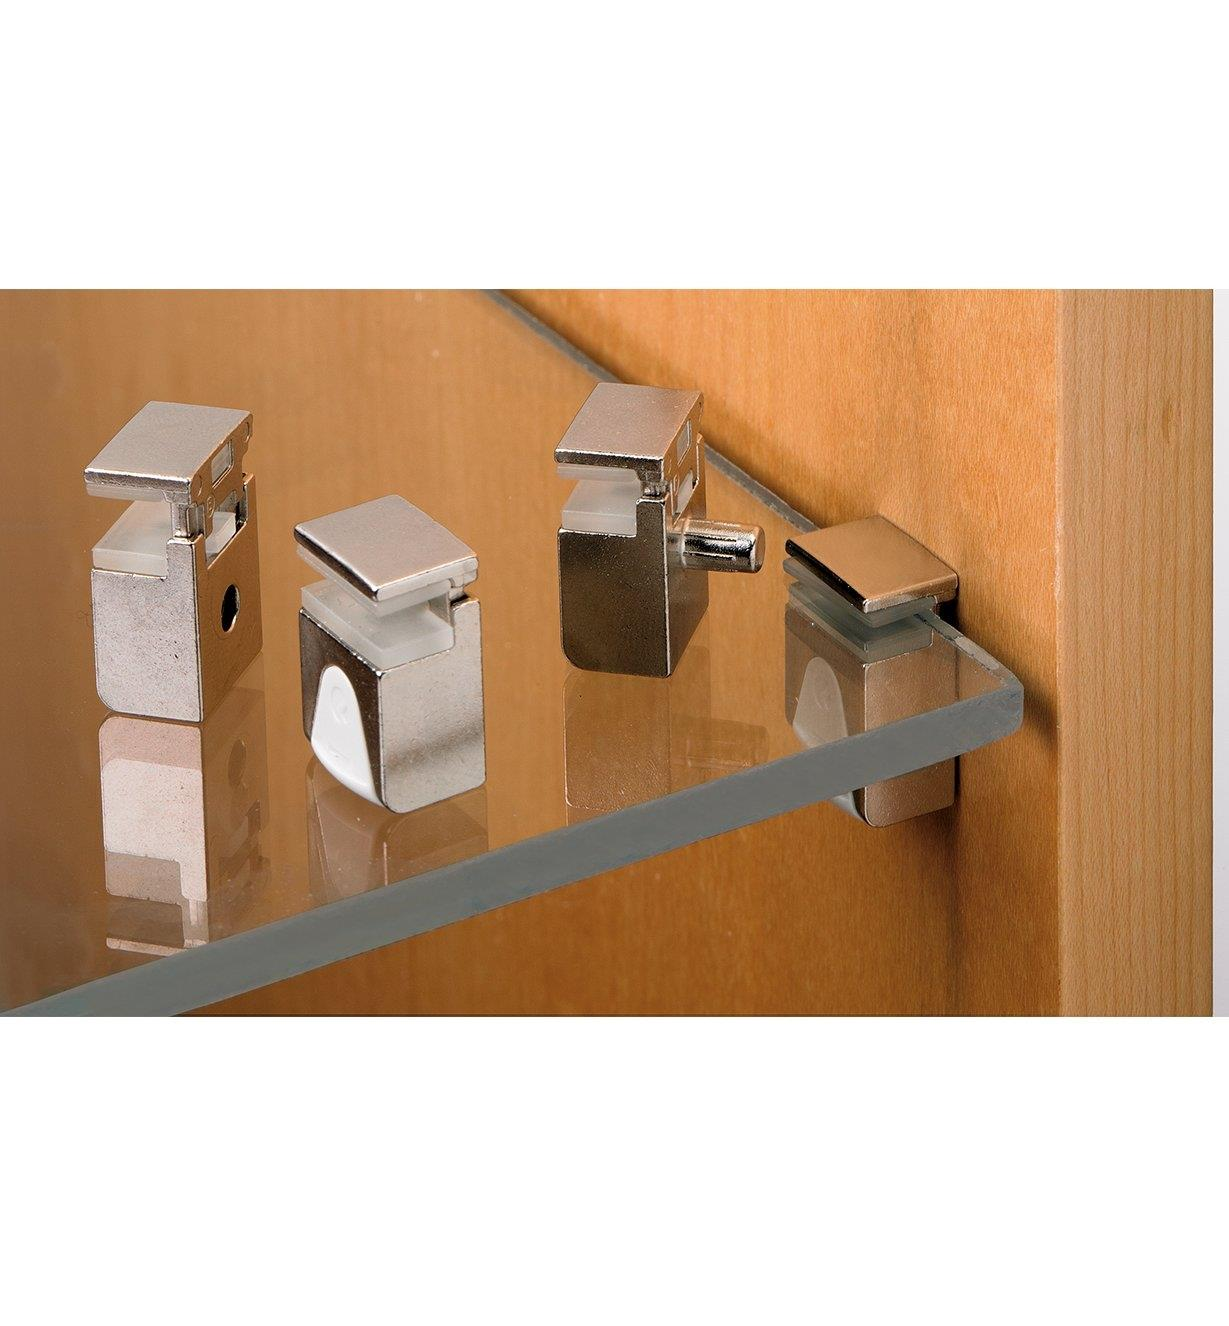 Three Kubic supports sitting on a glass shelf, with one support holding up the shelf